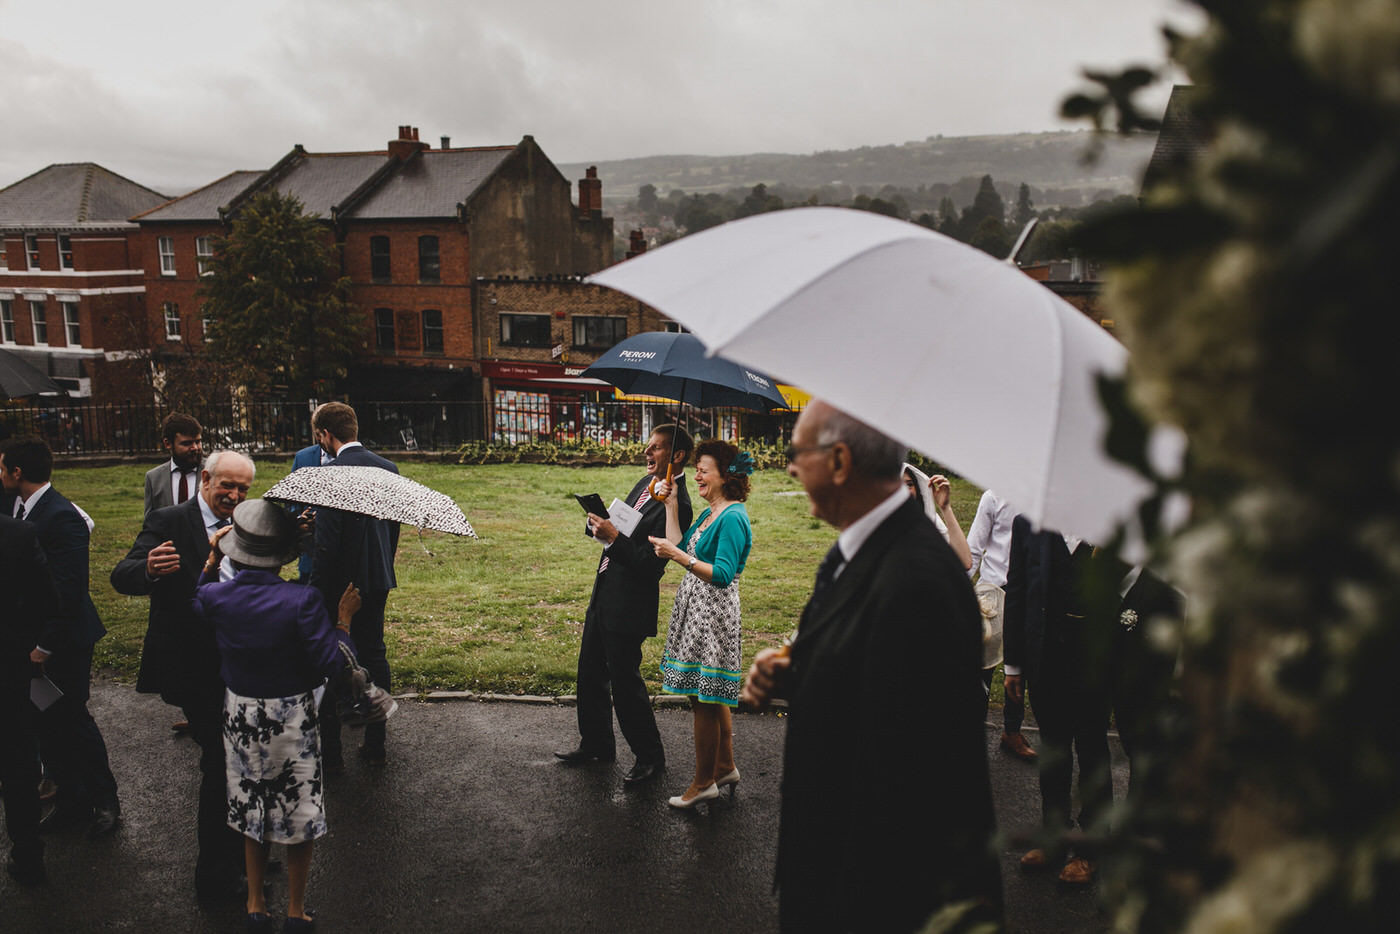 Wedding guests sheltering from the rain with brollies